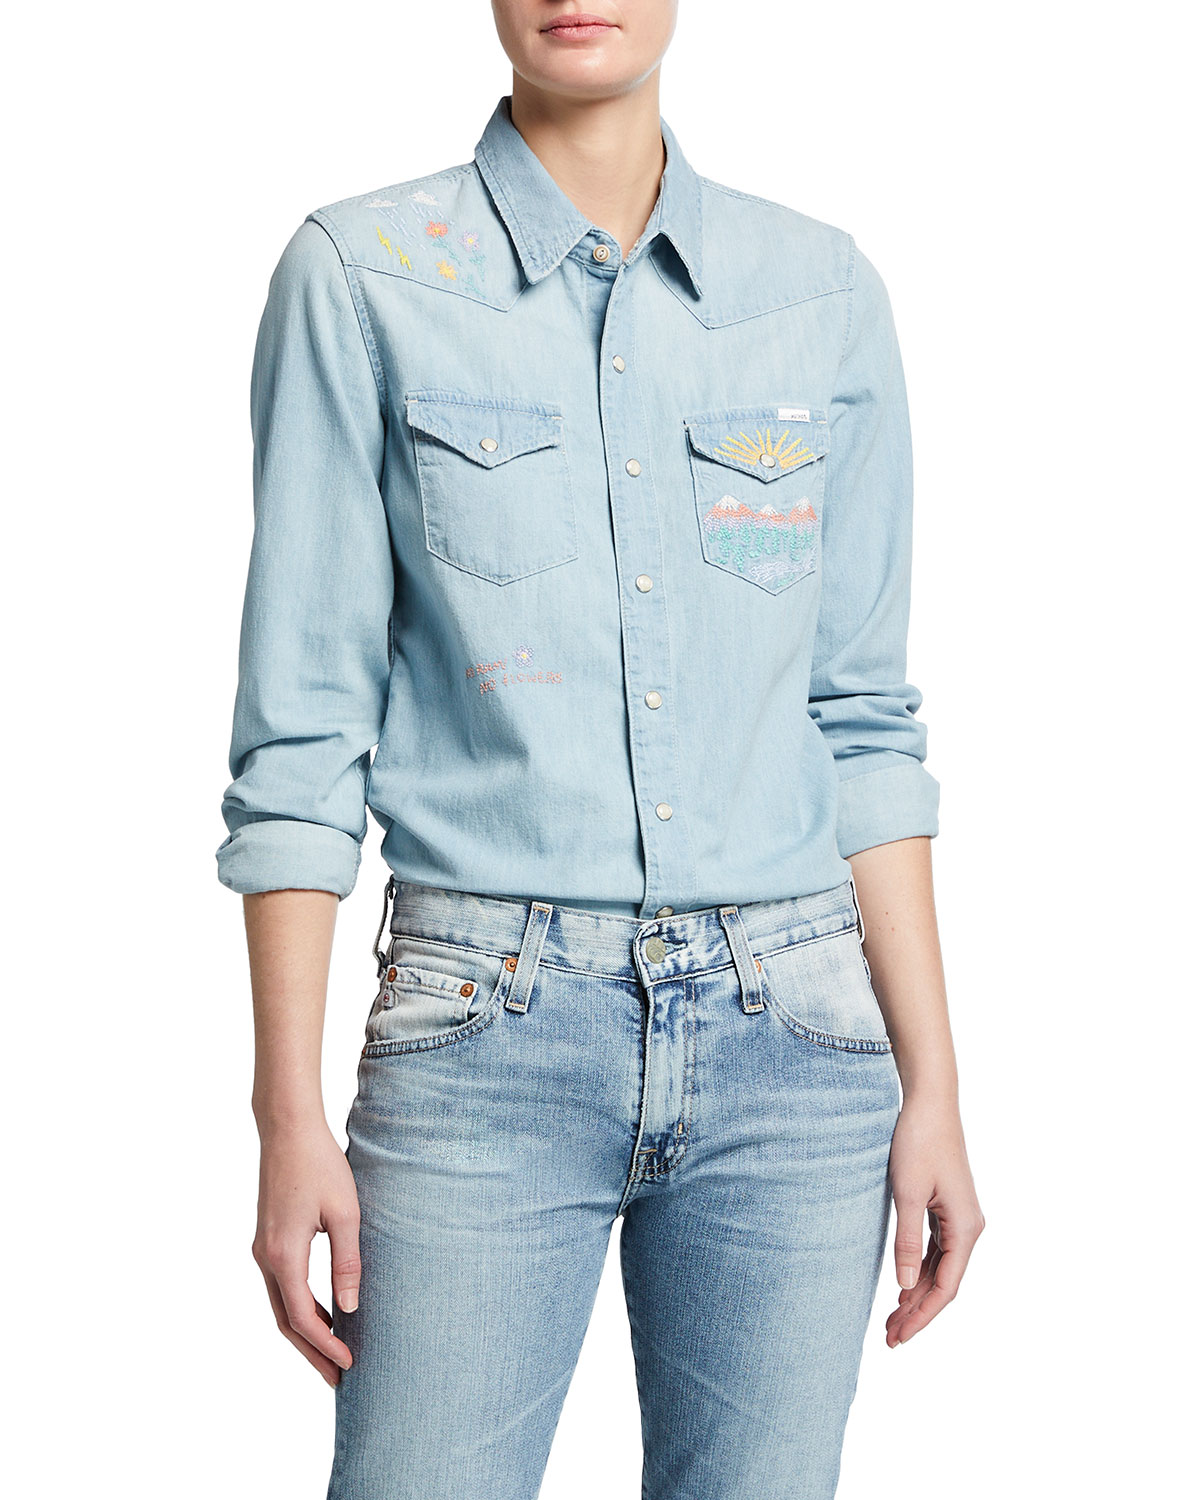 All My Exes Embroidered Denim Shirt